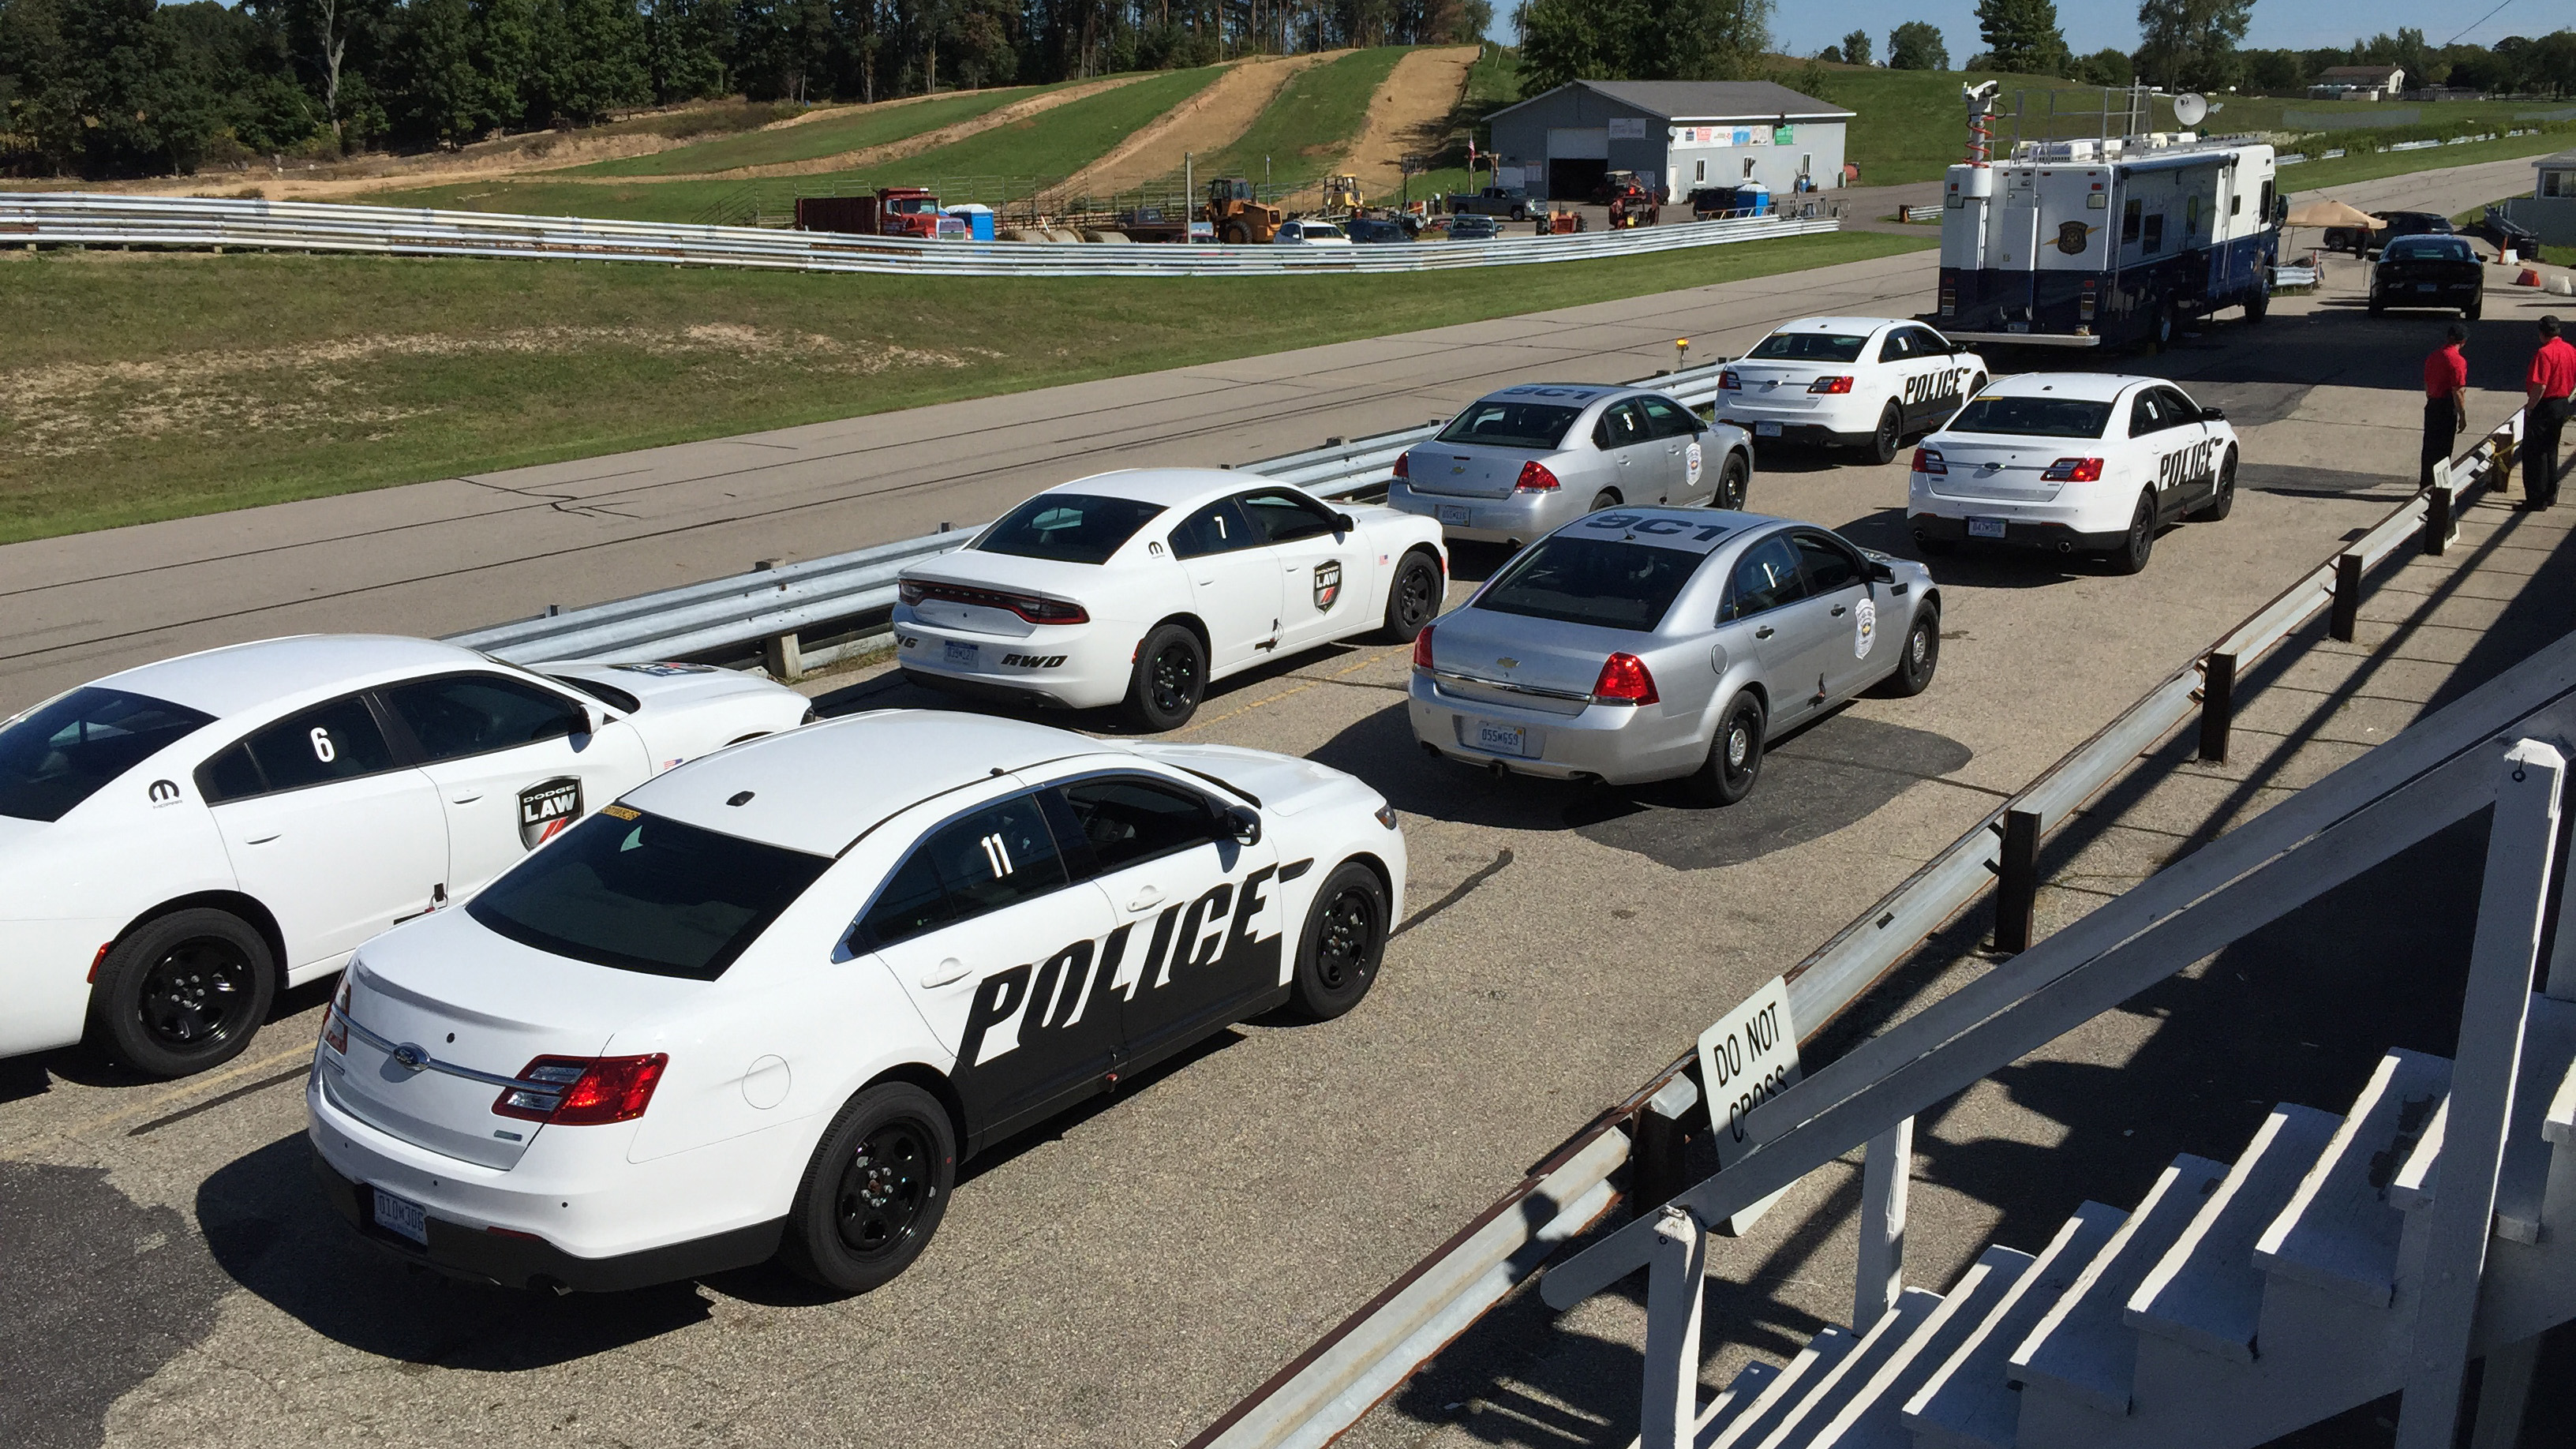 Fords pursuit vehicles ranked highest in police department testing fords pursuit vehicles ranked highest in police department testing top speed publicscrutiny Gallery